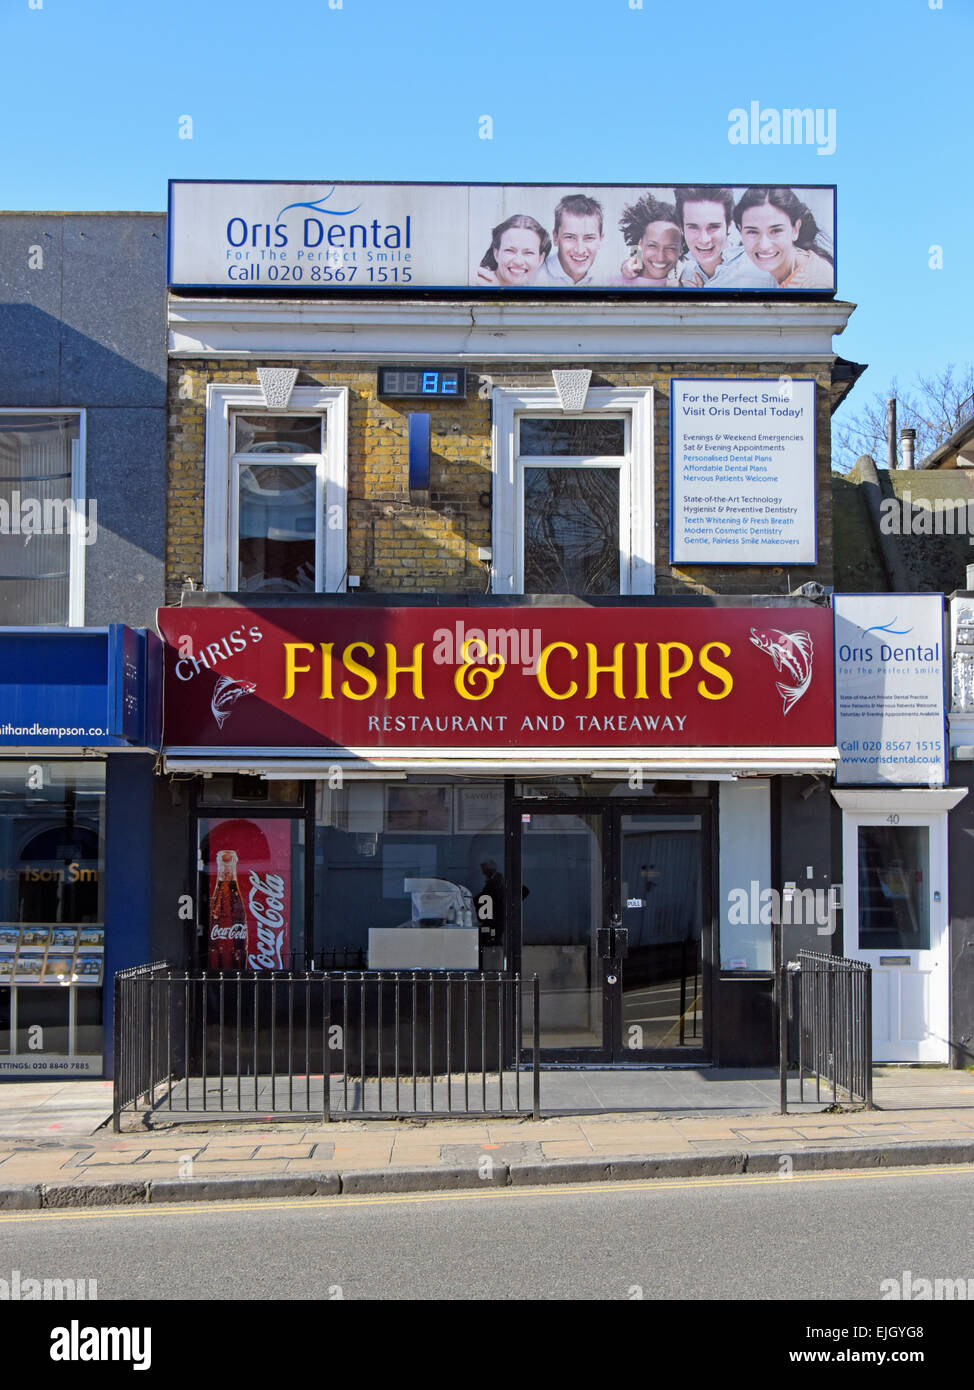 Chris's Fish & Chips and Oris Dental. High Street, Ealing, London, England, United Kingdom, Europe. Stock Photo